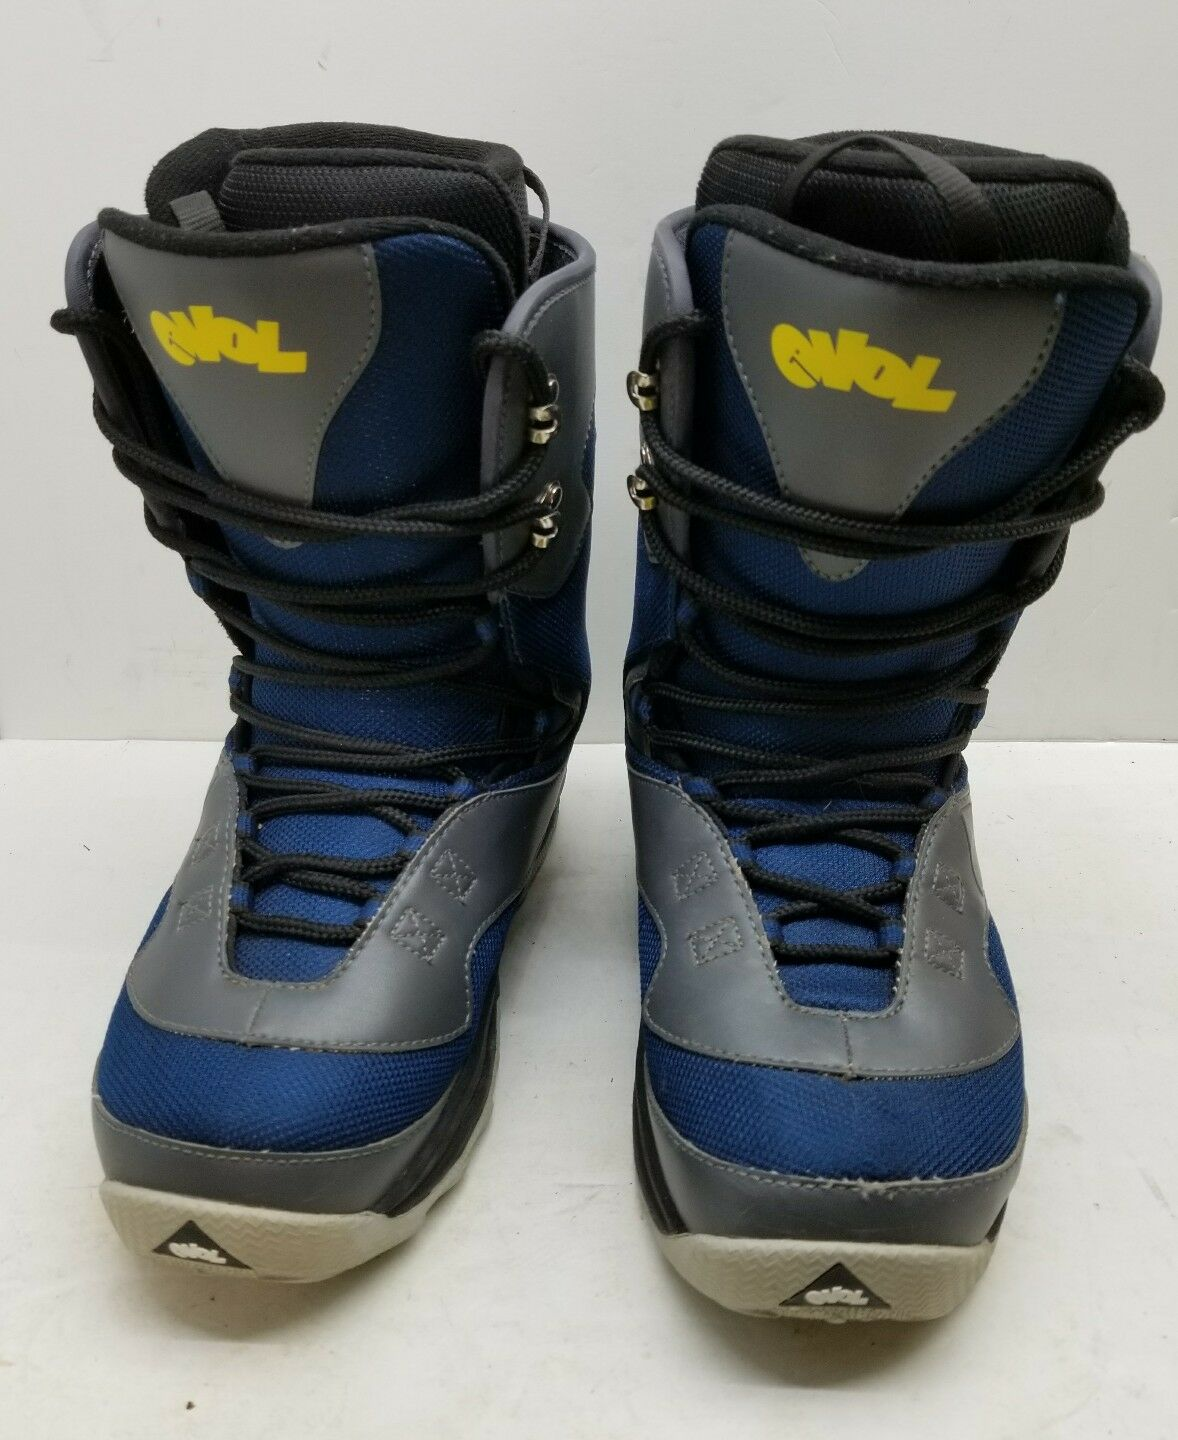 Evol Womens bluee Snowboard Boots US size 8  excellent Condition1B